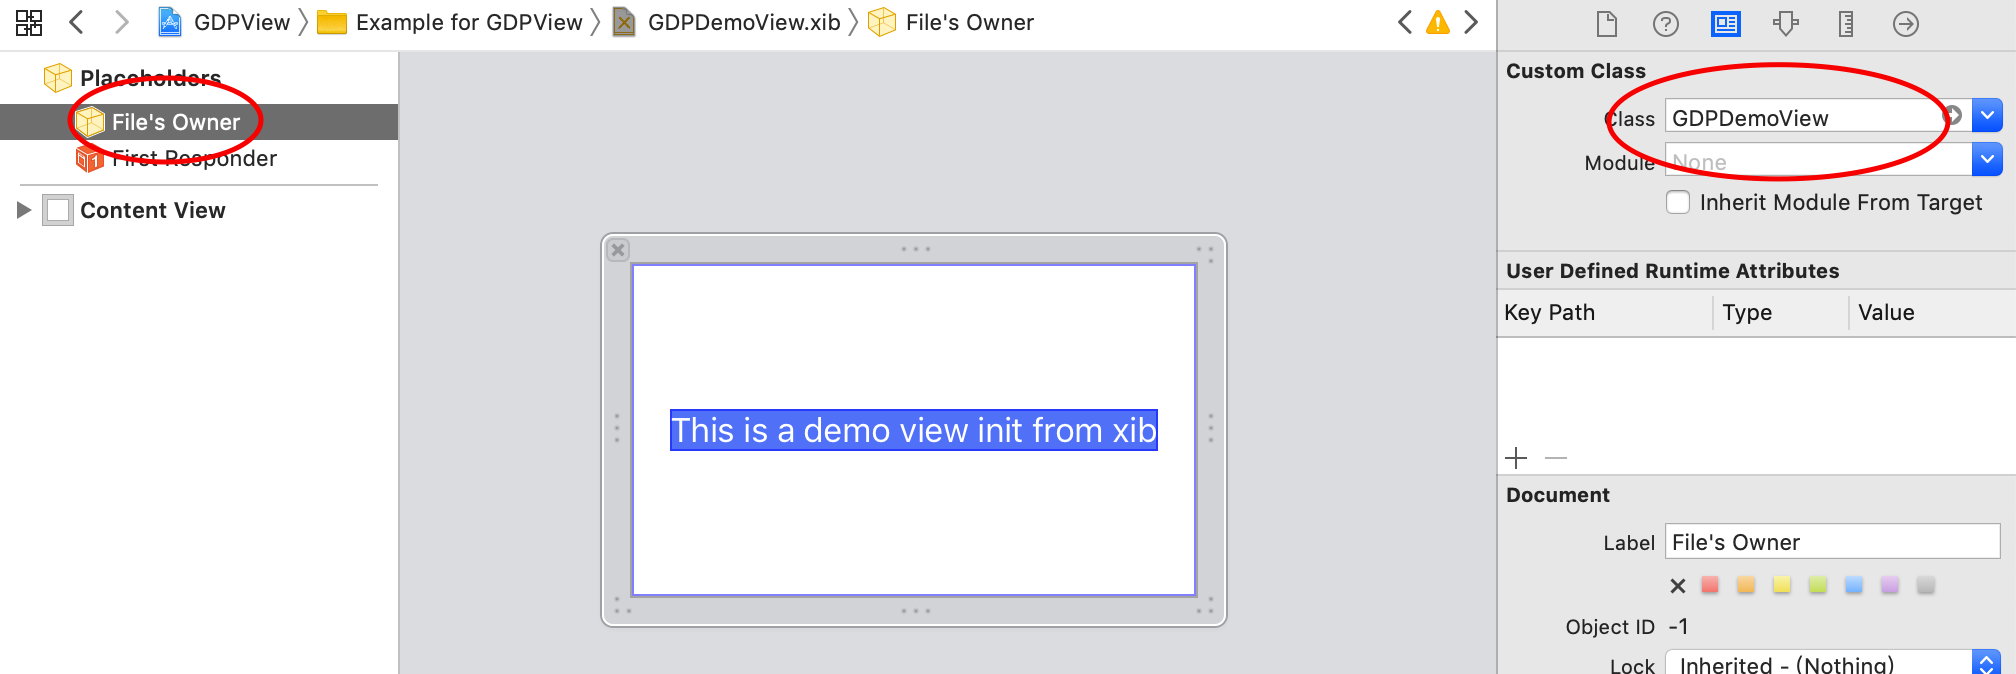 1. files owner set to gdpdemoview